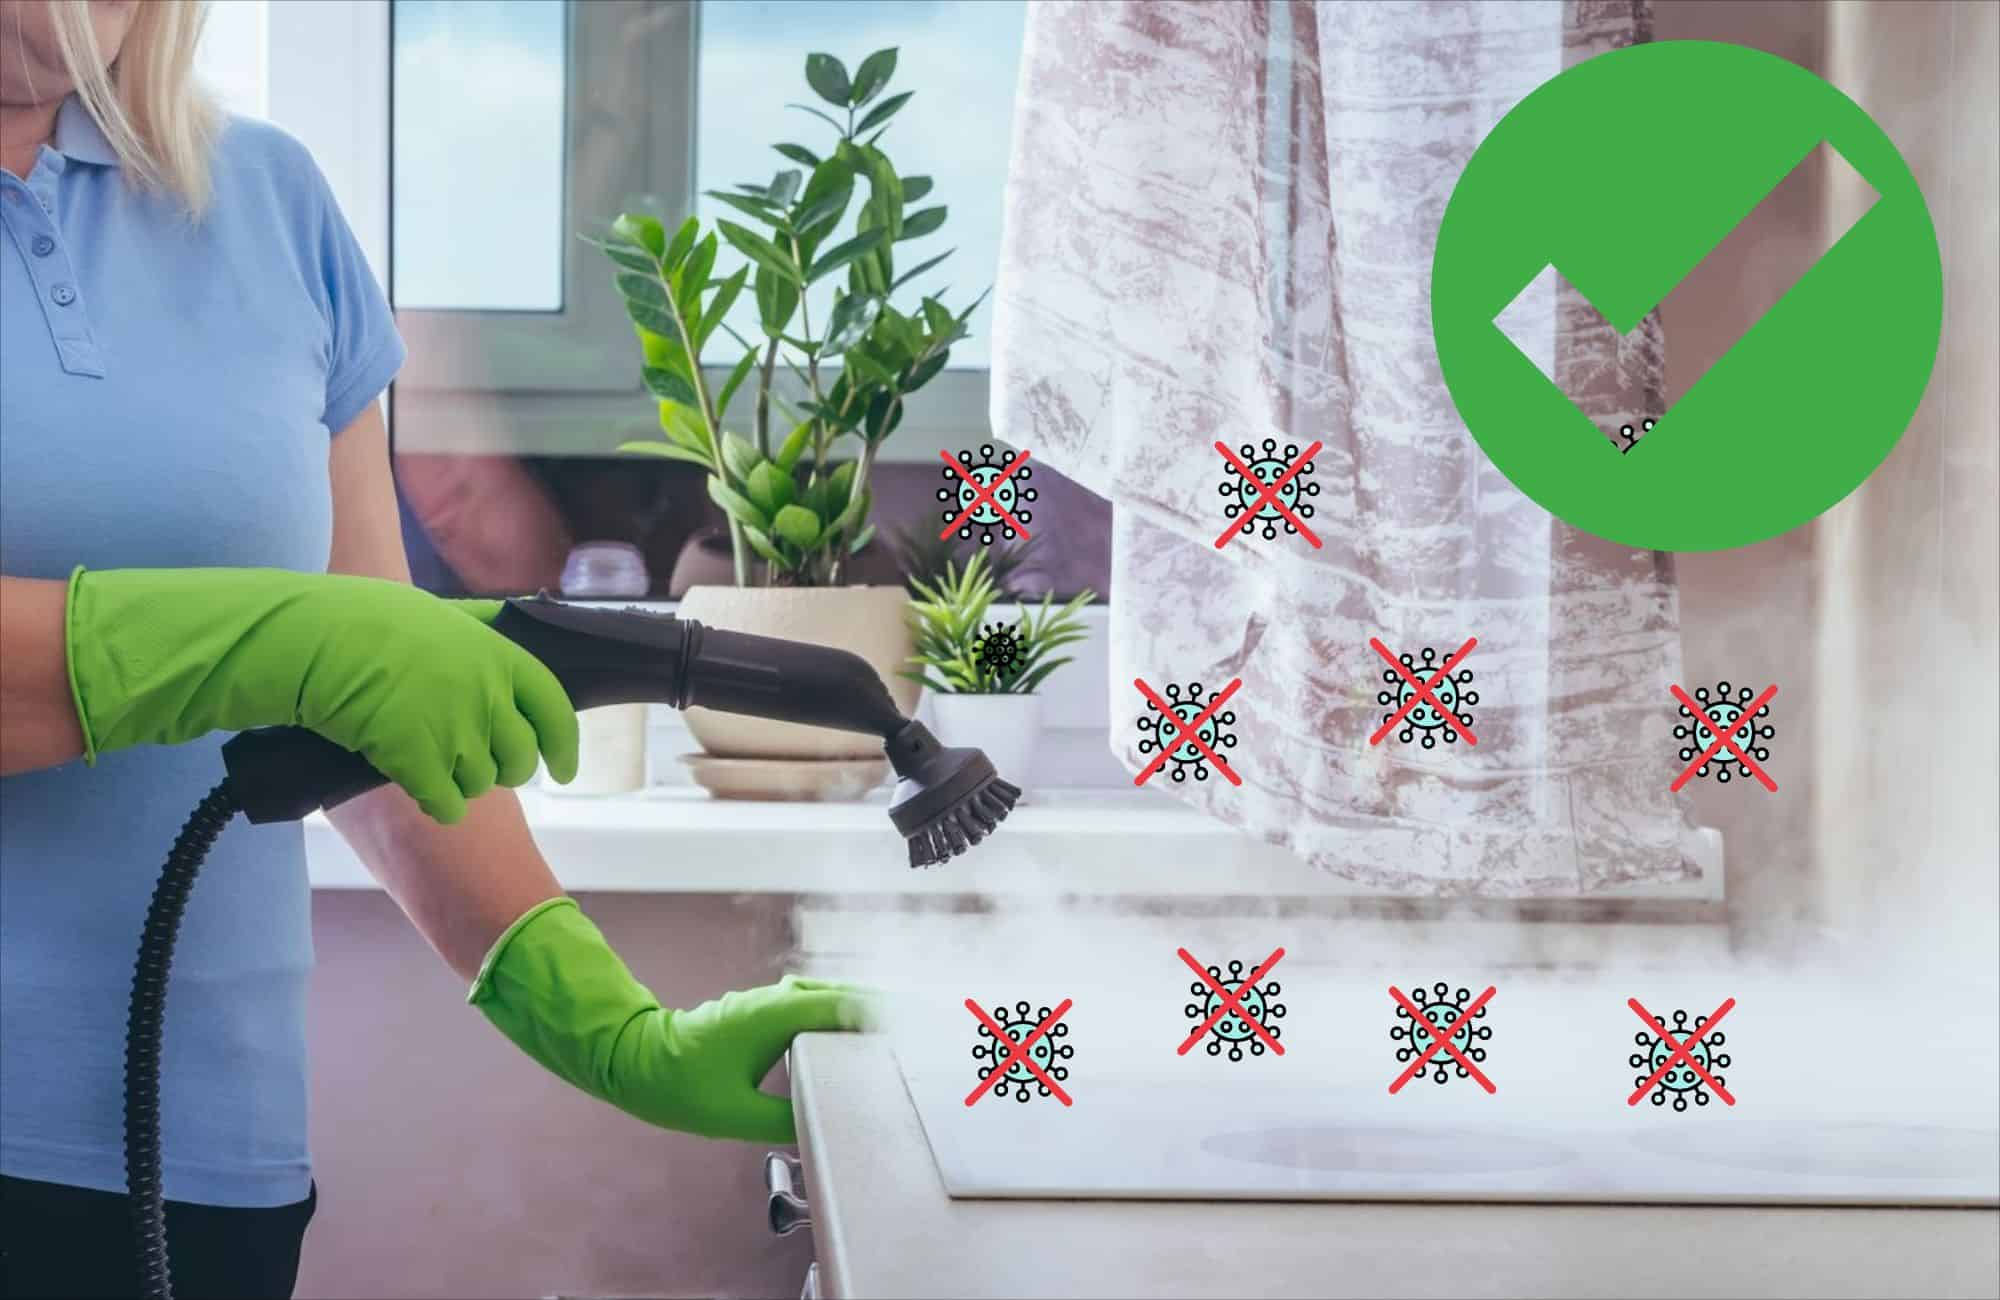 steam cleaning disinfects